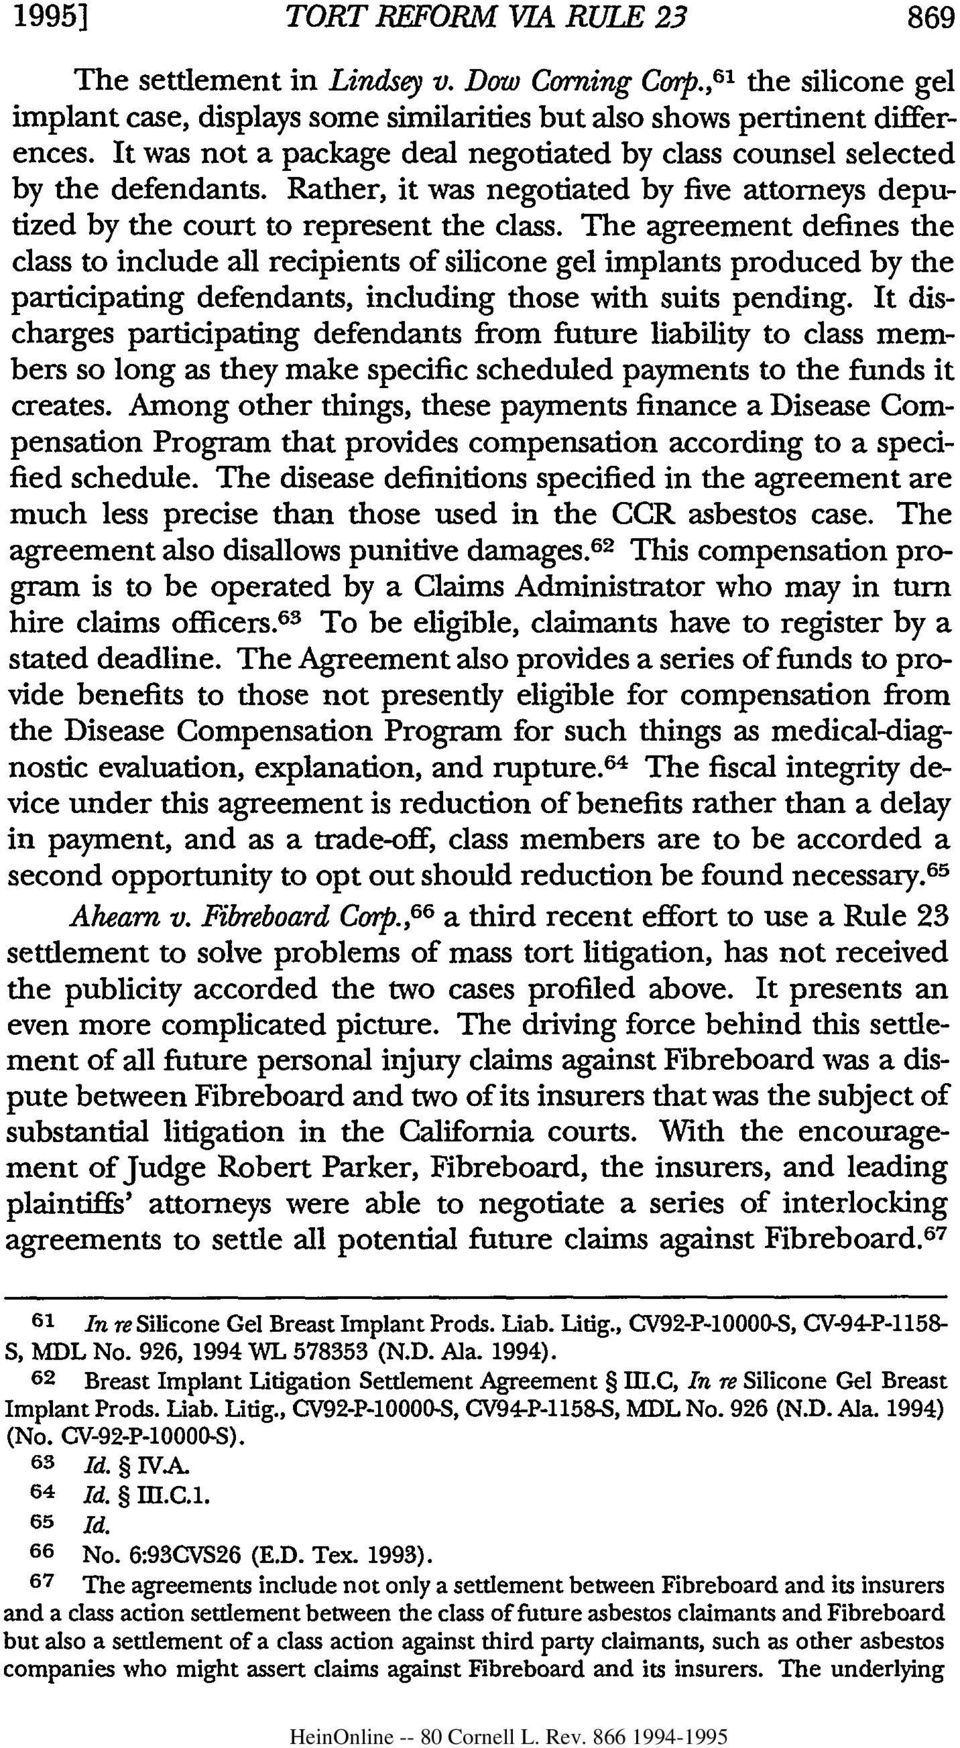 The agreement defines the class to include all recipients of silicone gel implants produced by the participating defendants, including those with suits pending.